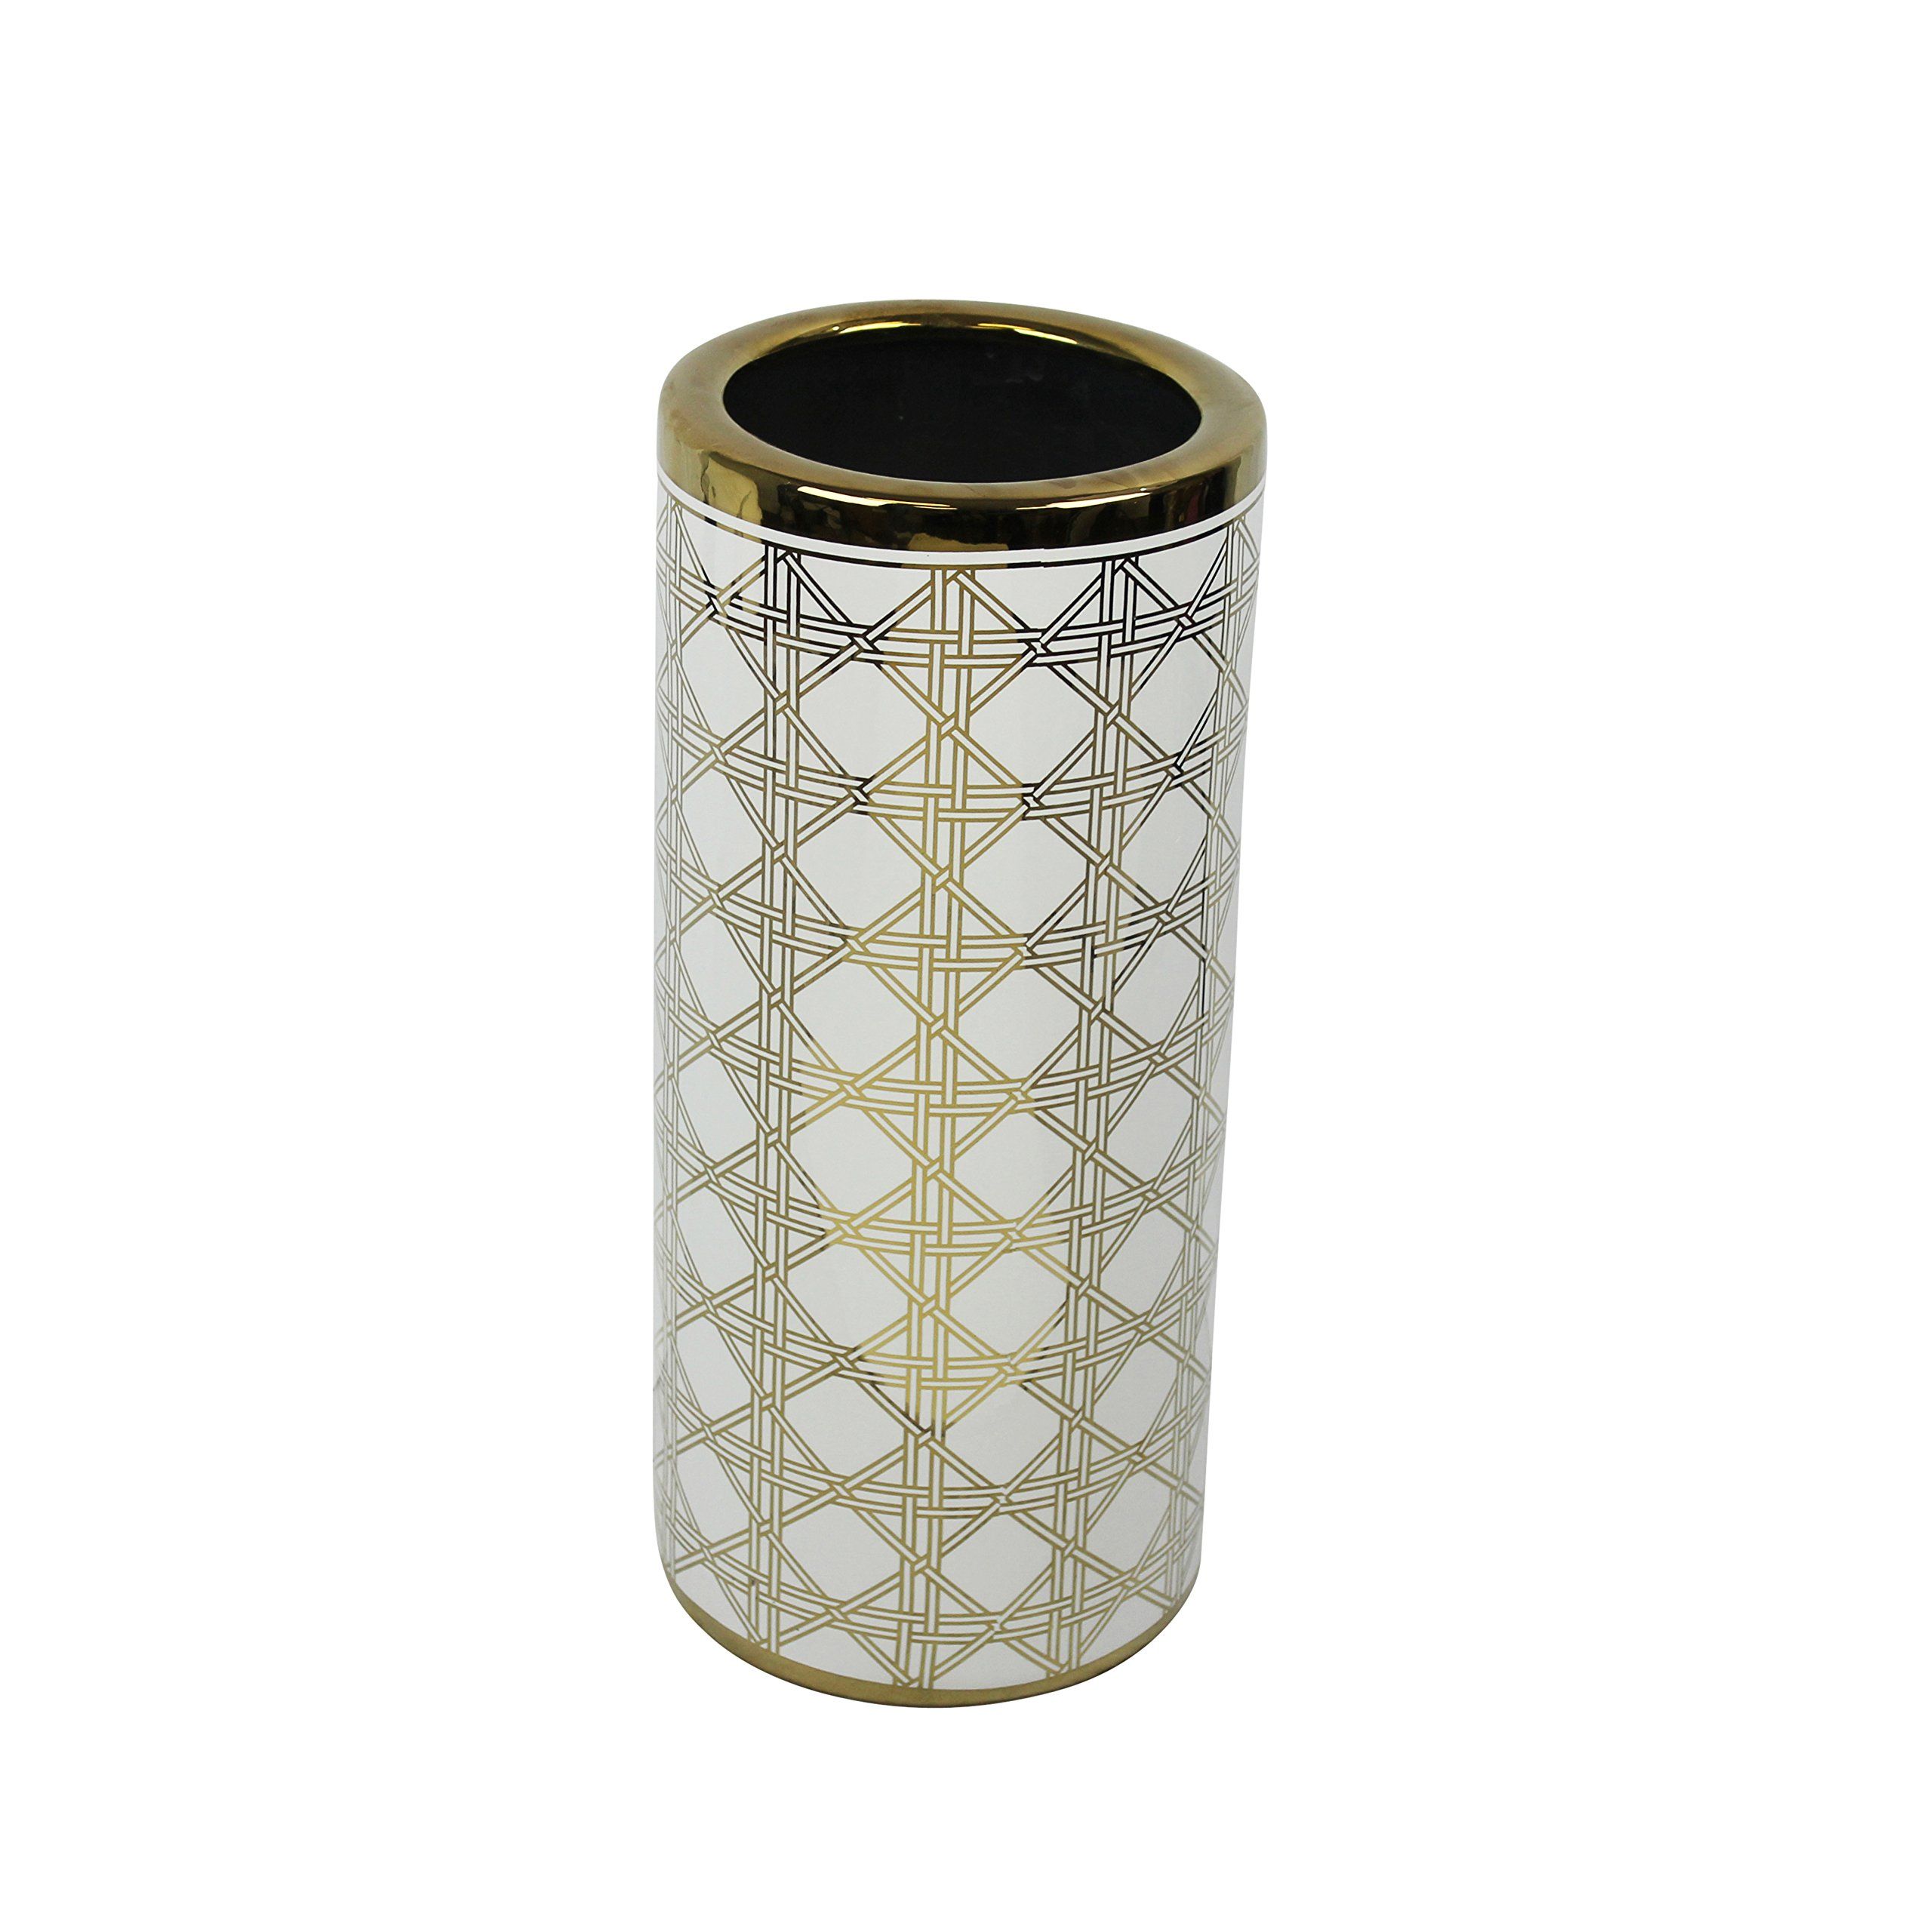 Sagebrook Home Ceramic Umbrella Stand, 7.75x7.75x18, White/Gold